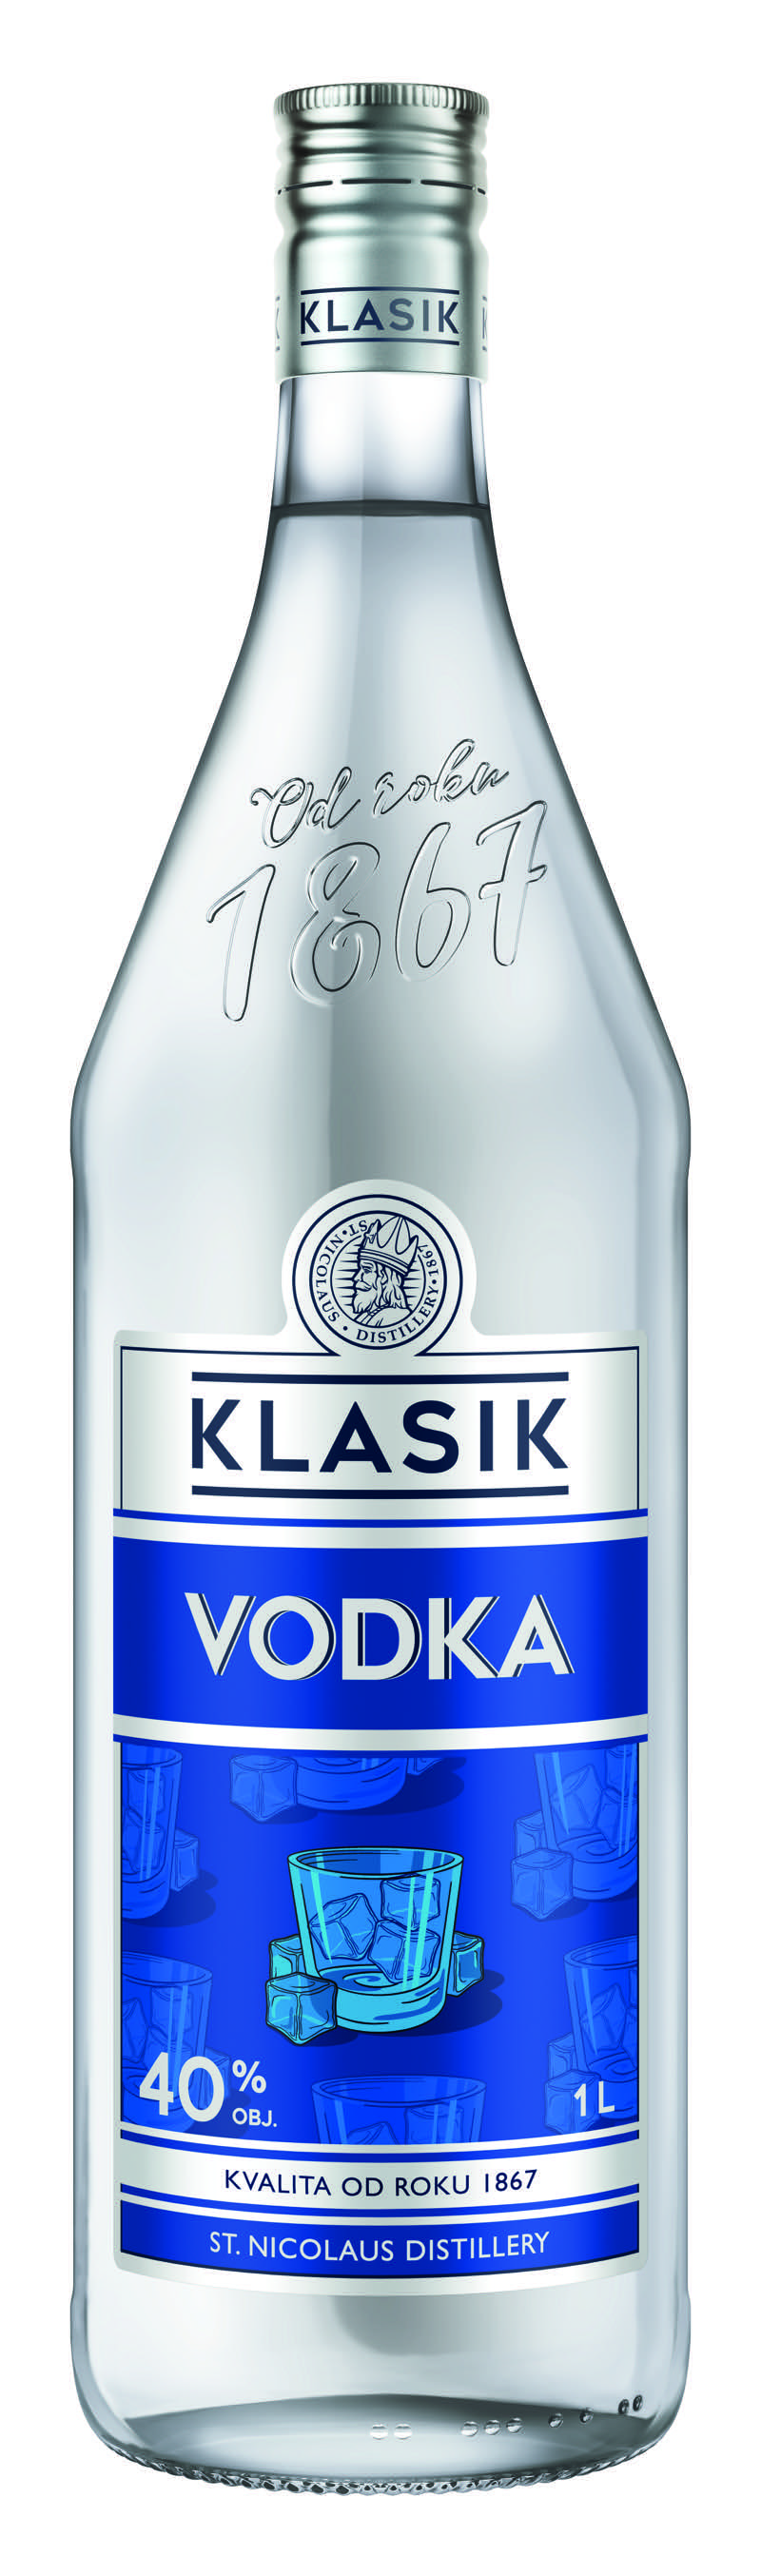 KLASIK Vodka 40% 1l